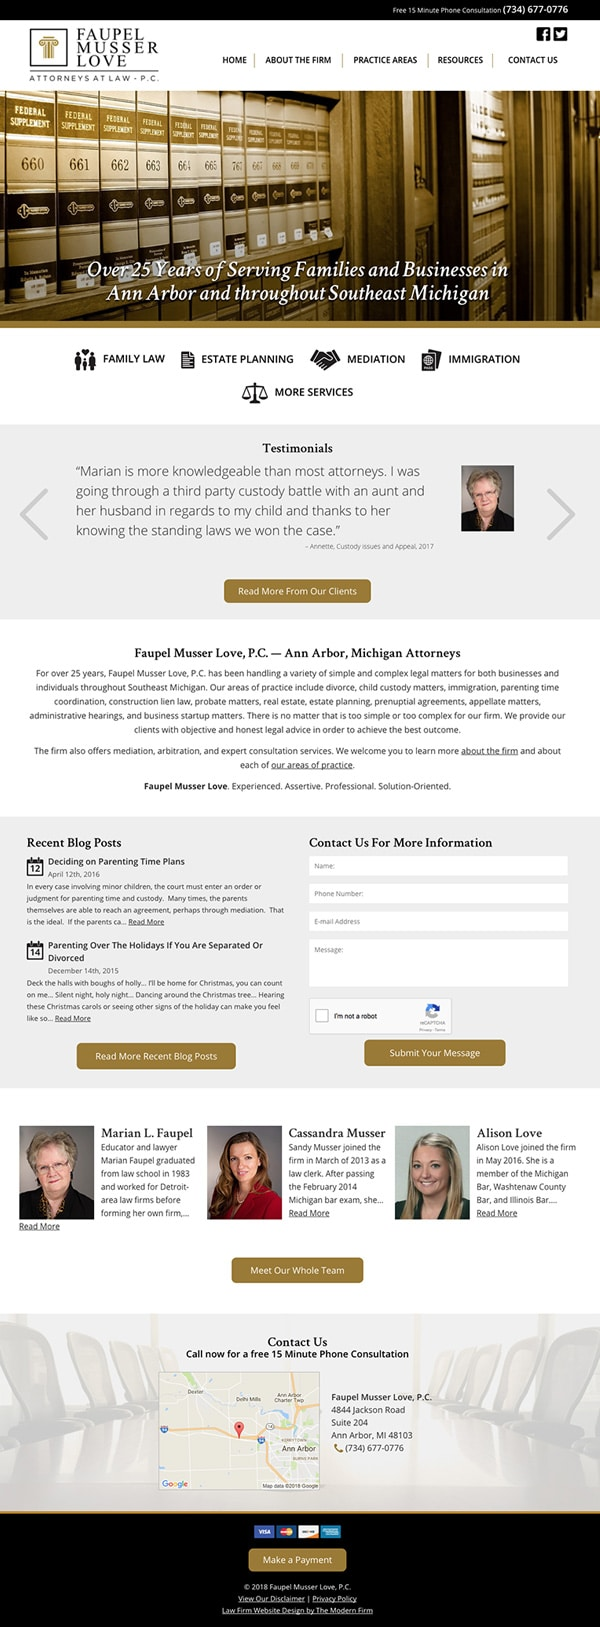 Law Firm Website Design for Faupel Musser Love, P.C.